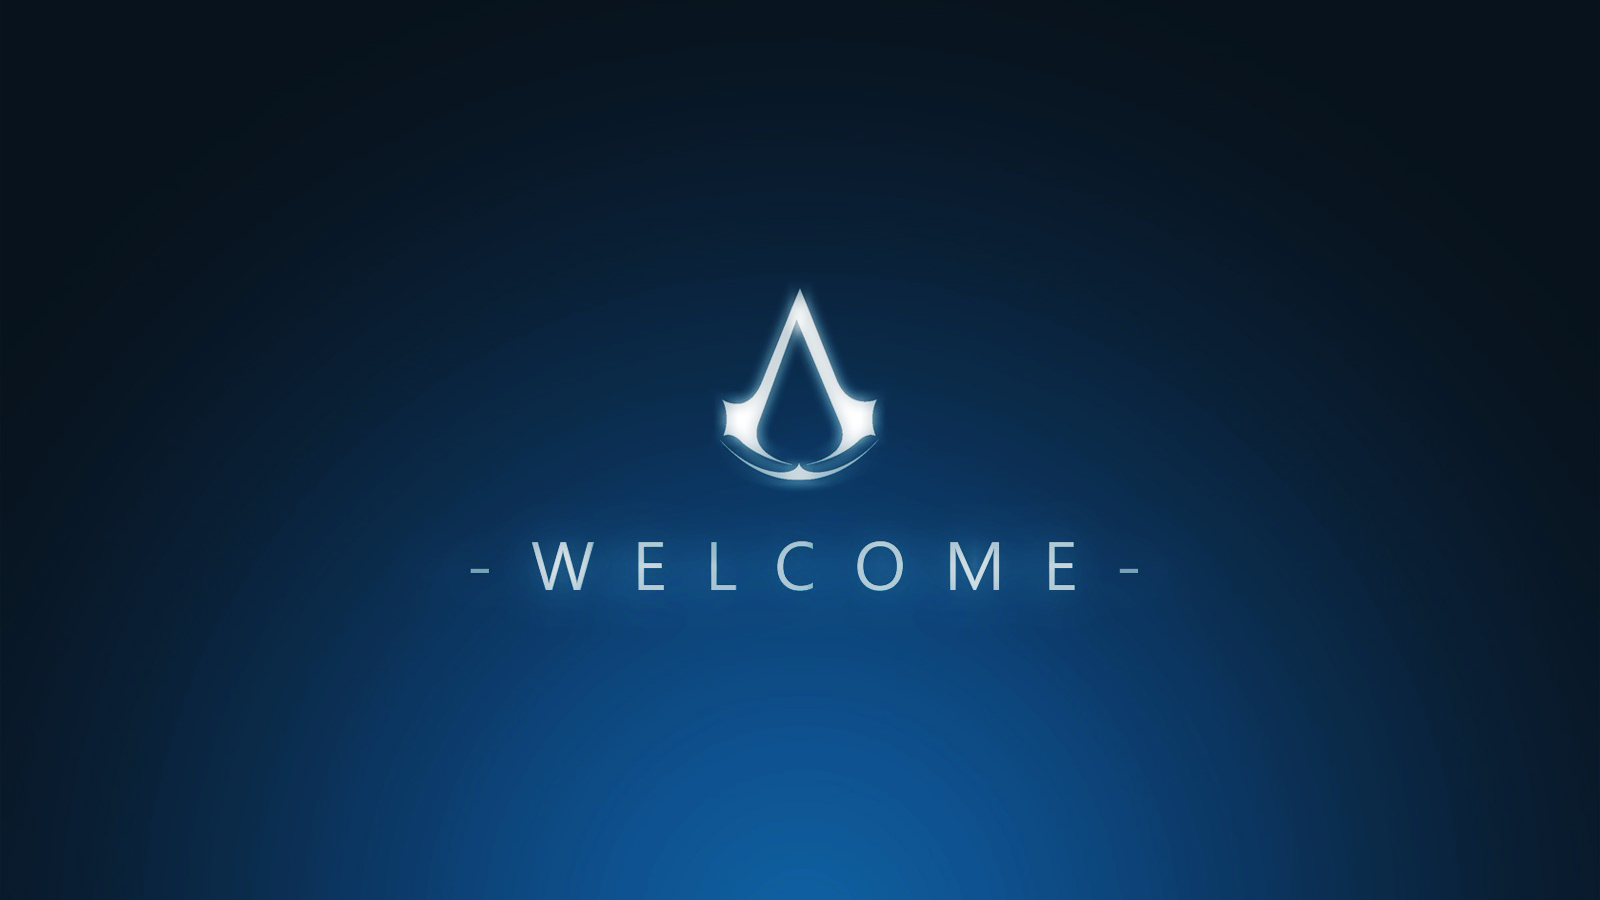 Free Download Creed Symbol Hd Wallpapers Hd Video Game Desktop Wallpapers Gameshd 1600x1000 For Your Desktop Mobile Tablet Explore 46 Blue Gaming Wallpaper Blue Desktop Wallpaper Dark Blue Wallpaper